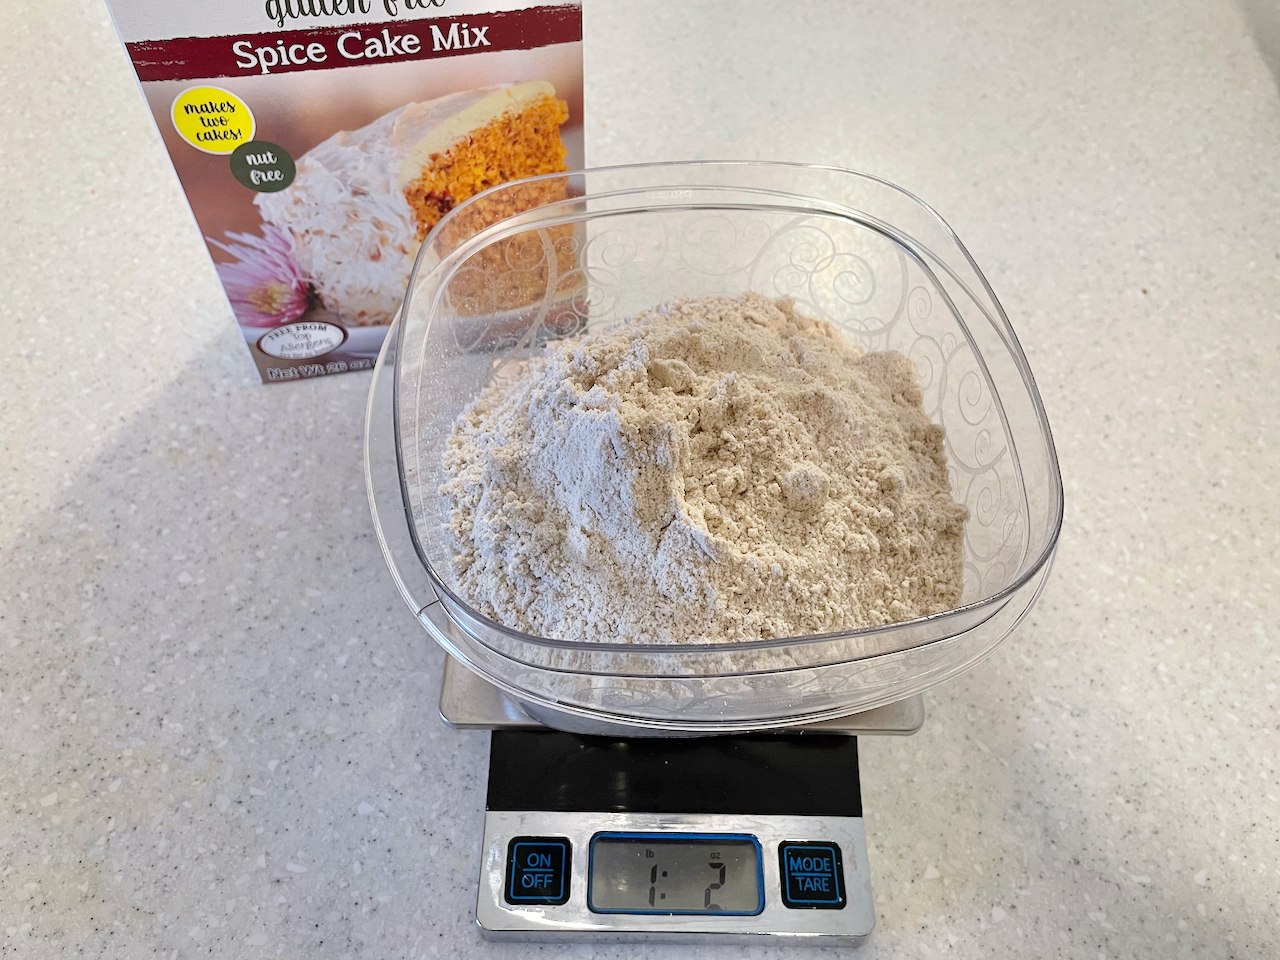 Cake mix being weighed on a food scale reading 1 pound, 2 ounces and a spice cake mix box behind it.